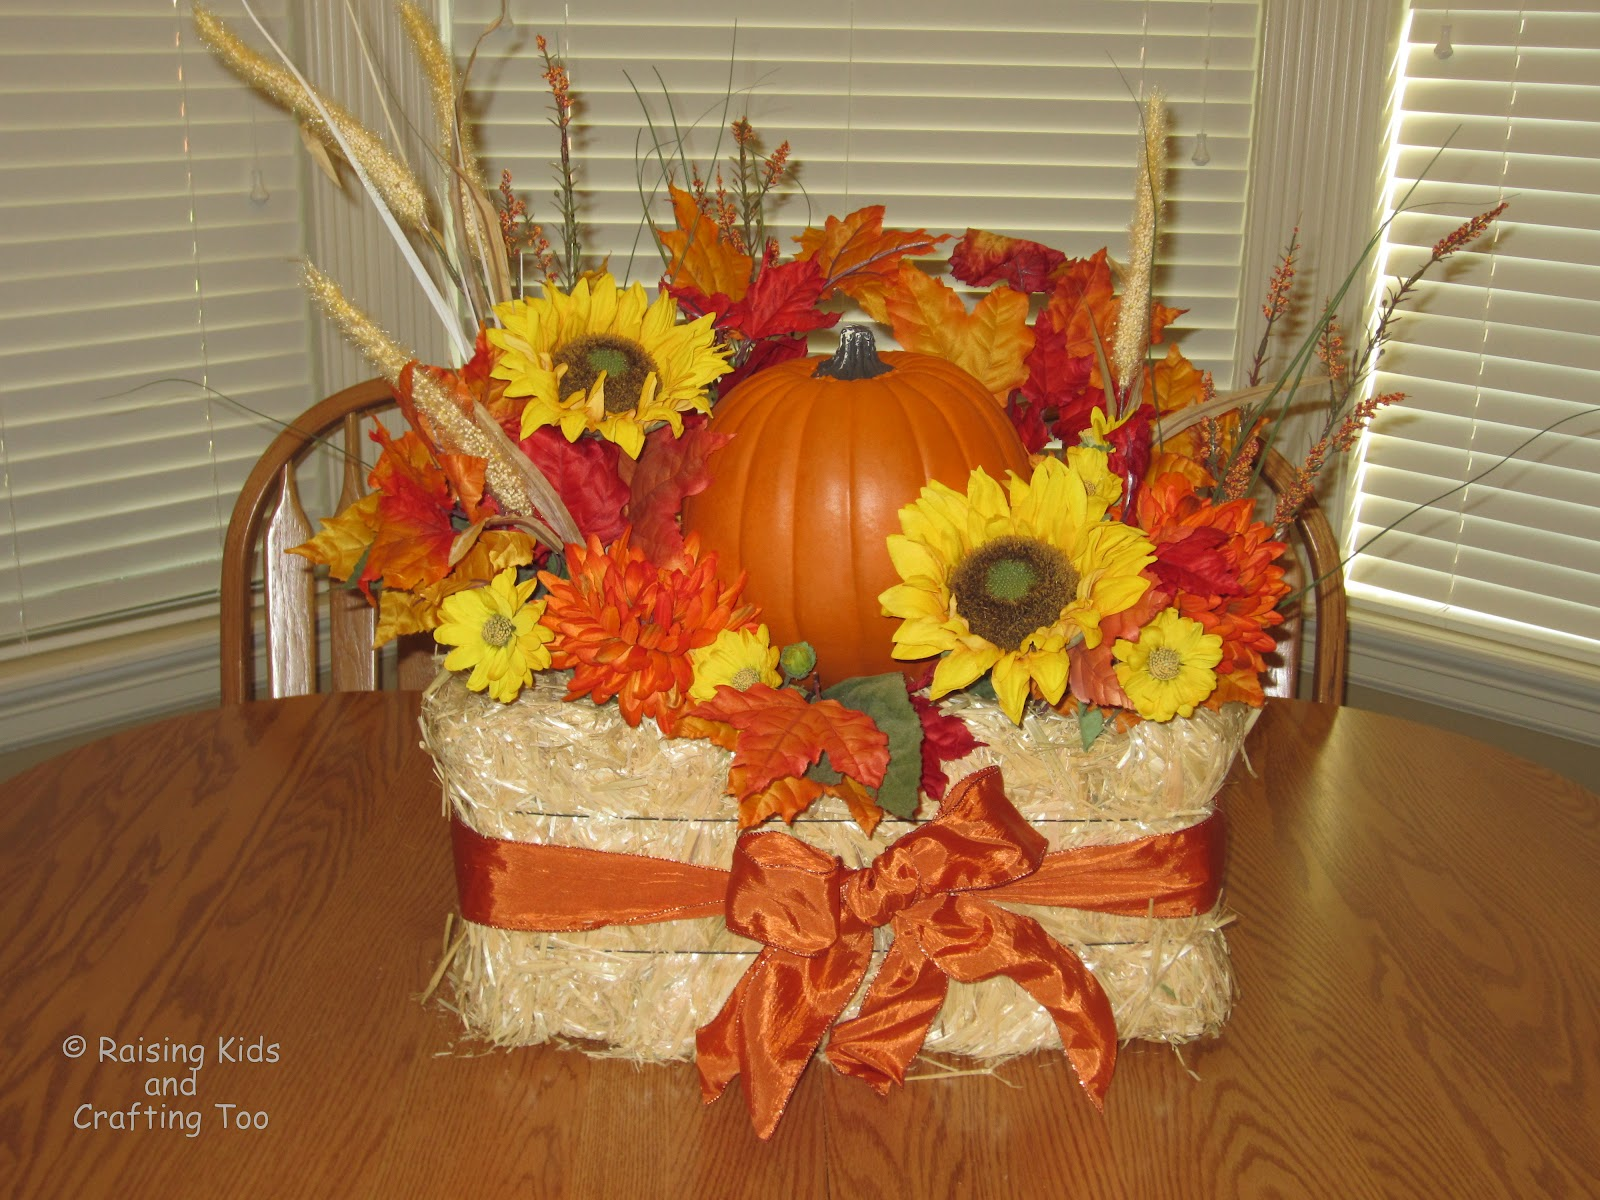 Raising kids and crafting too decorative fall hay bale for Decorative flowers for crafts